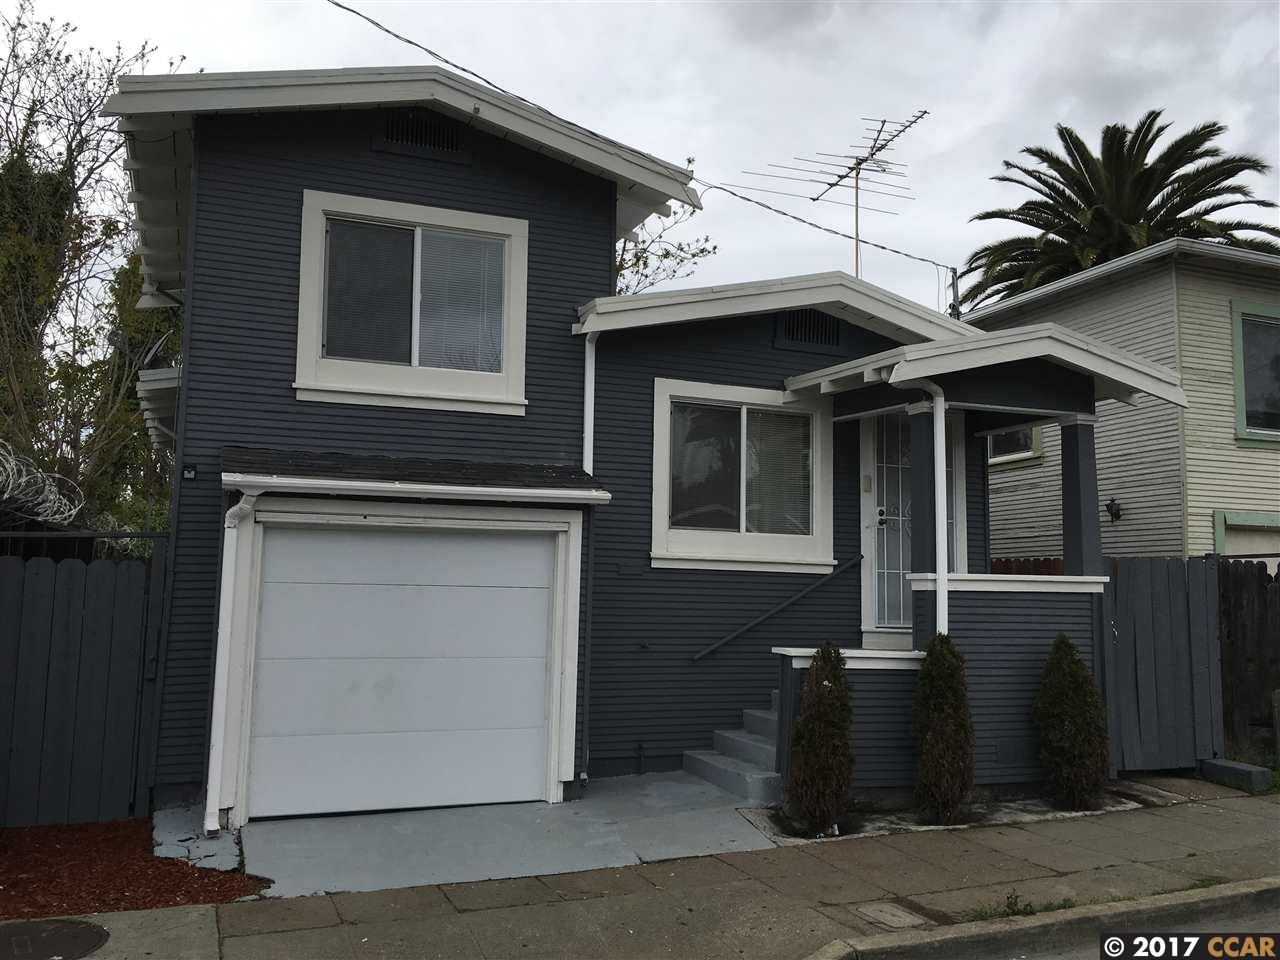 2921 Havenscourt Blvd | OAKLAND | 768 | 94605